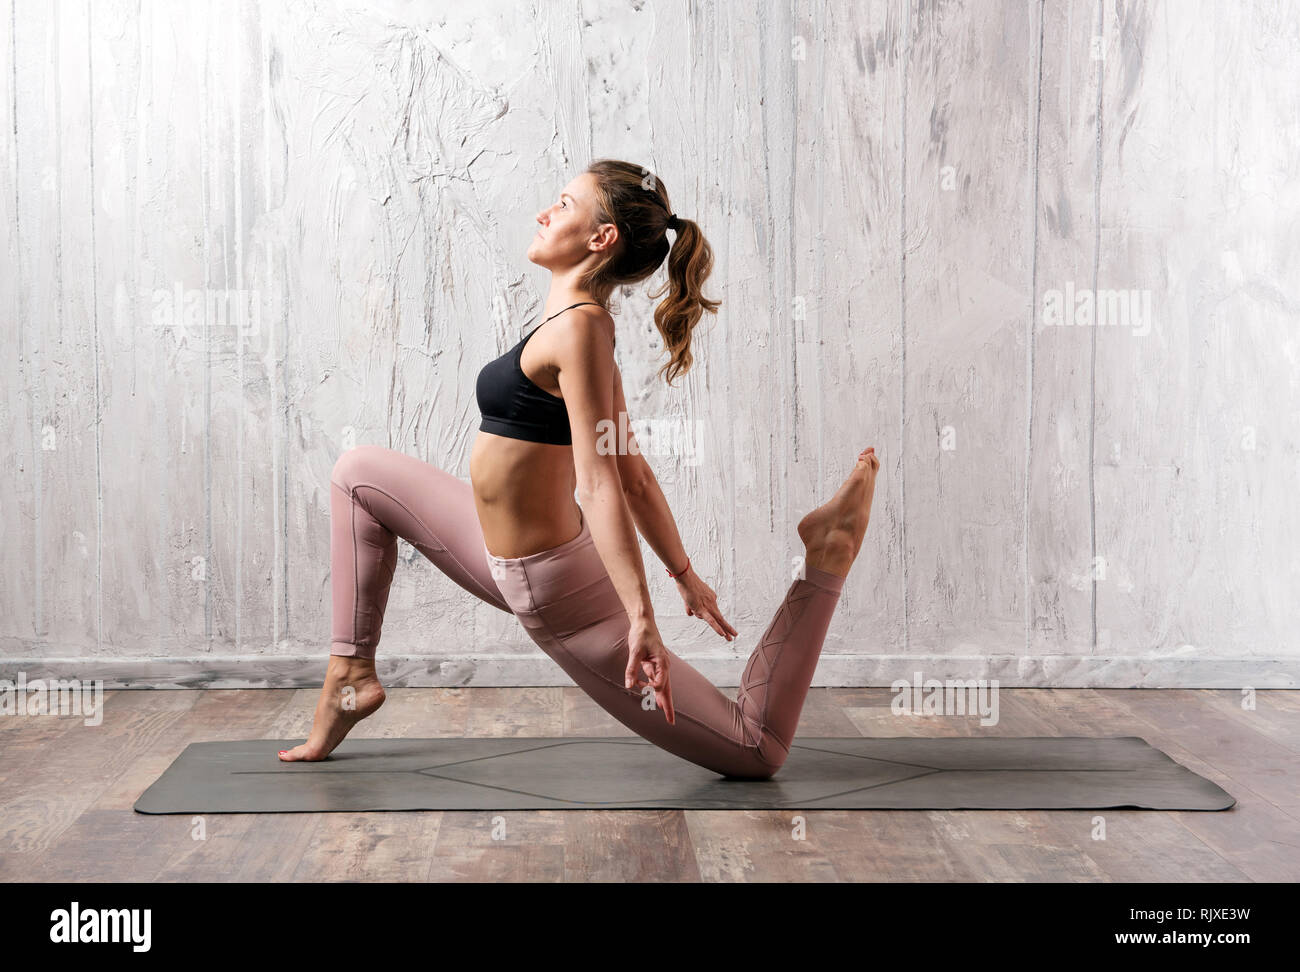 Anjaneyasana yoga pose shown by young woman in training pants and top, exercising indoors against grey wall and viewed from her side - Stock Image